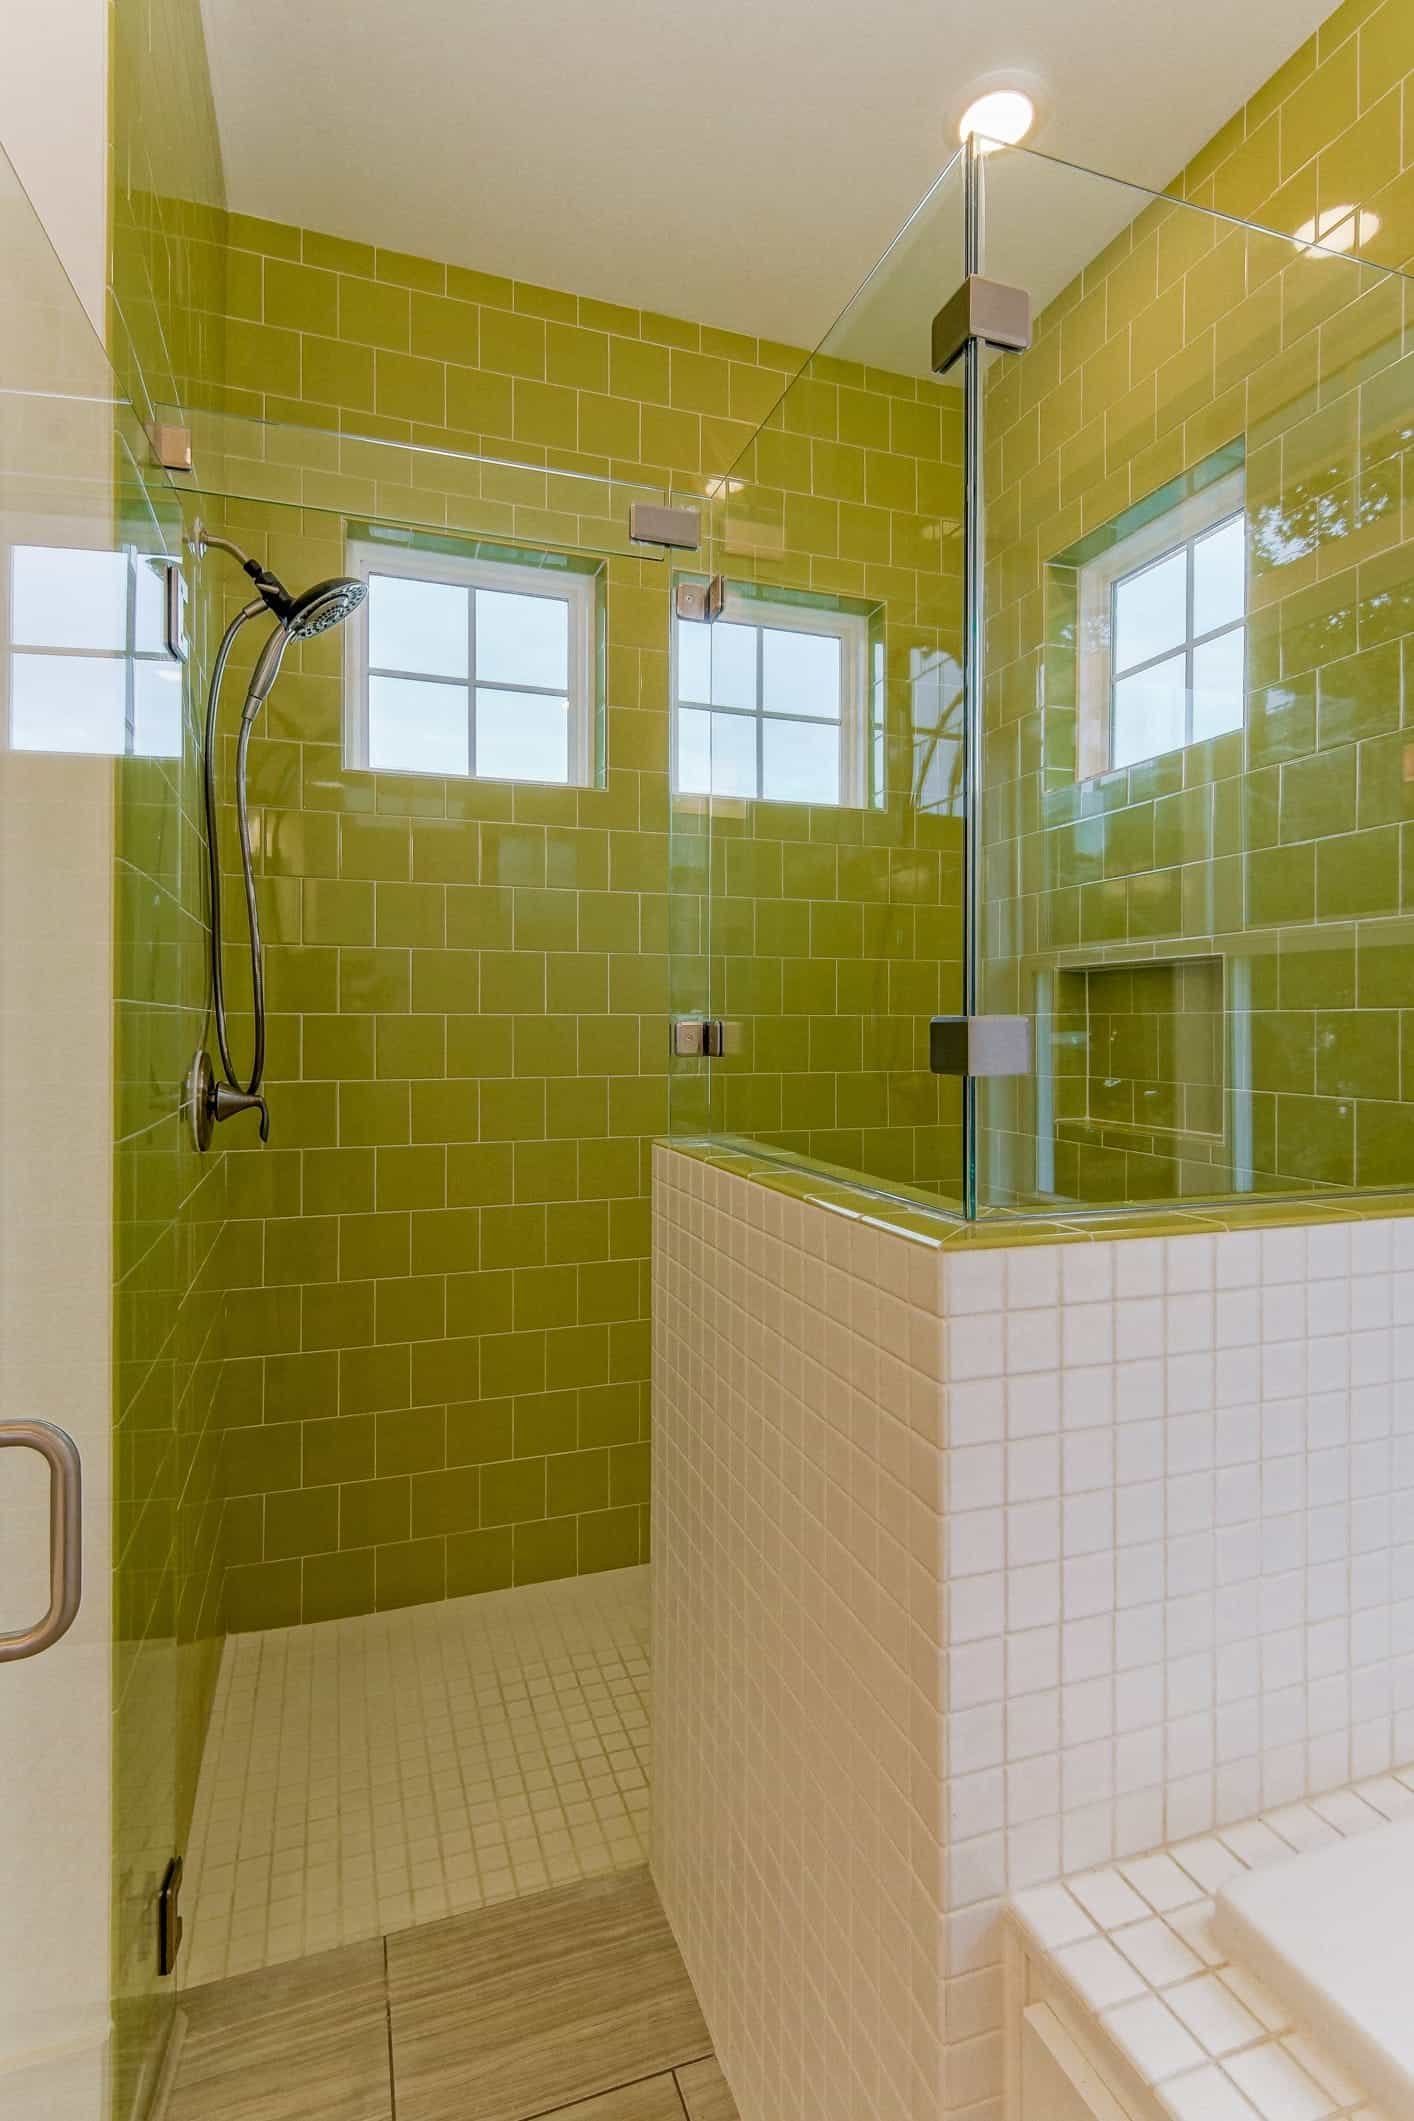 Modern Glass Enclosed Shower Bathroom With Lime Green Tiles (Image 11 of 12)